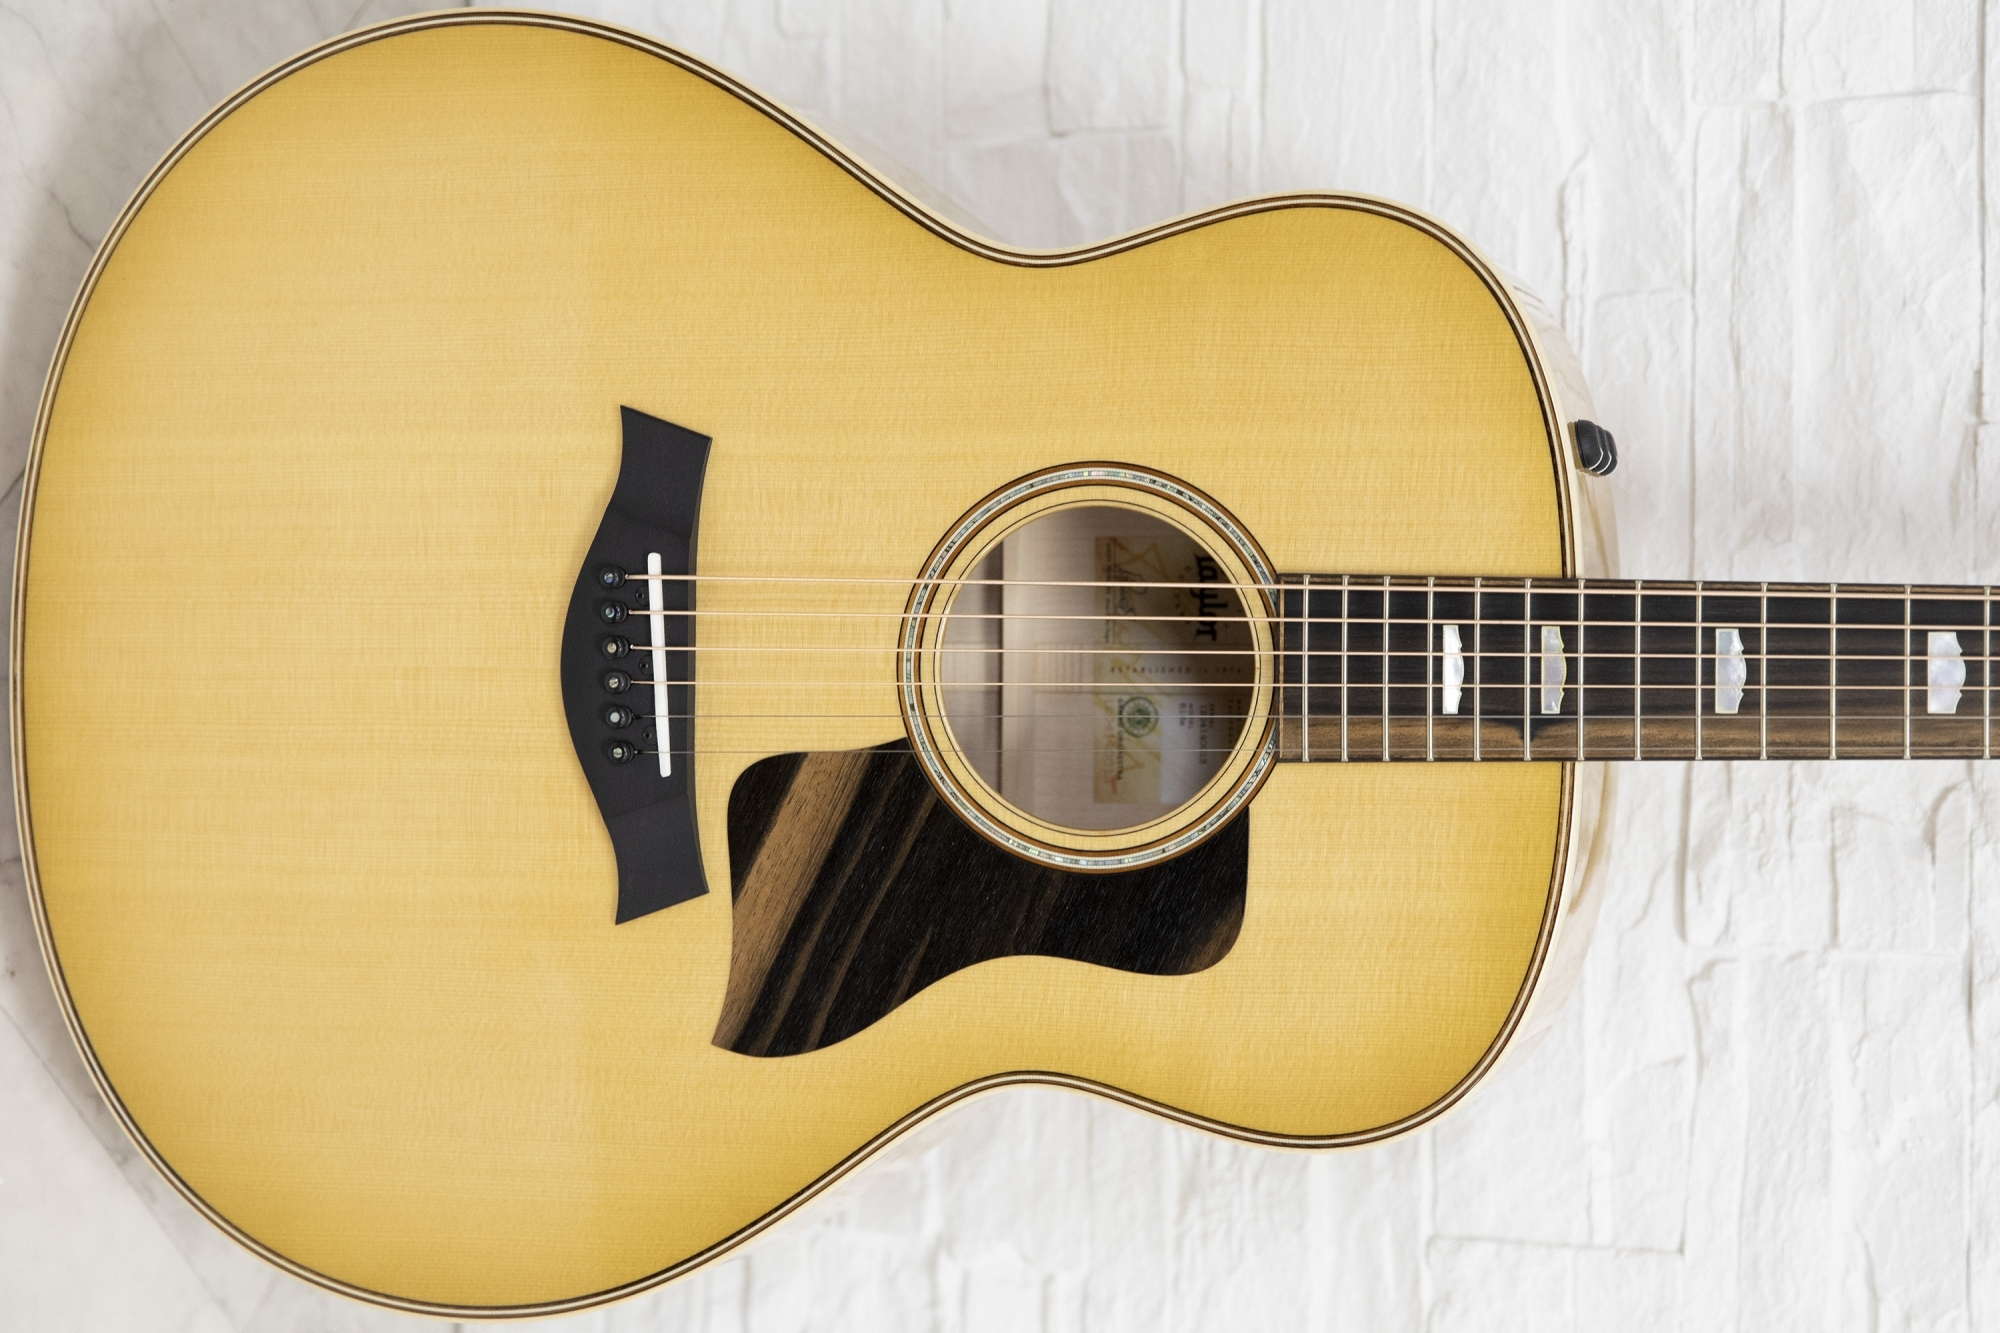 Taylor 618e Antique Blonde Acoustic Guitars From Reidys Home Of Music Uk